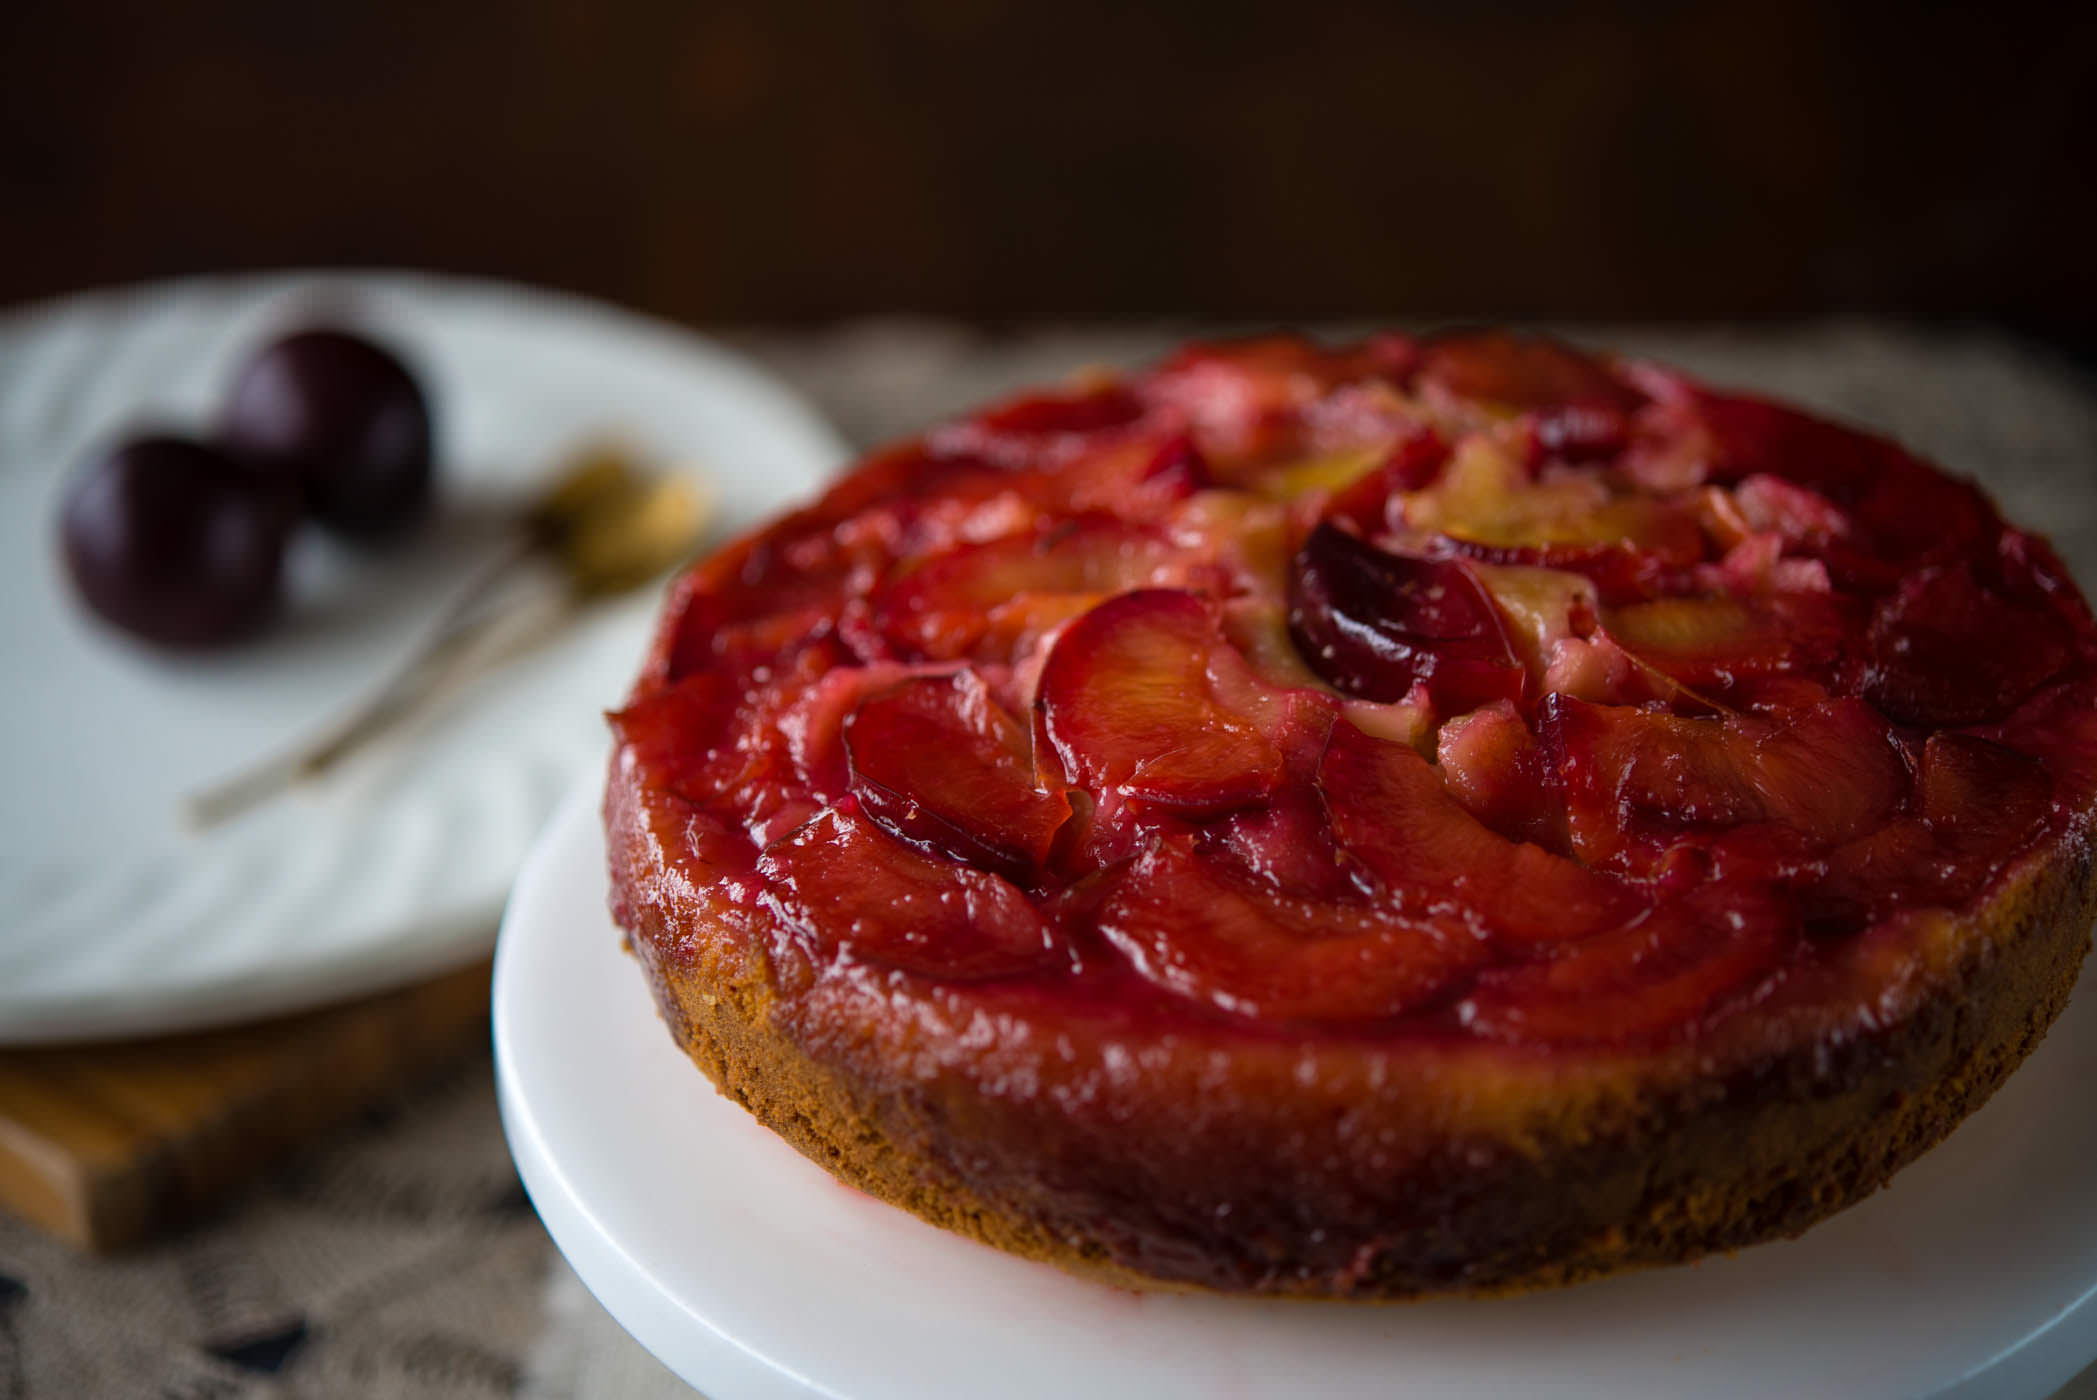 ... Anne of Green Gables + Upside Down Plum Cake | The Hungry Australian